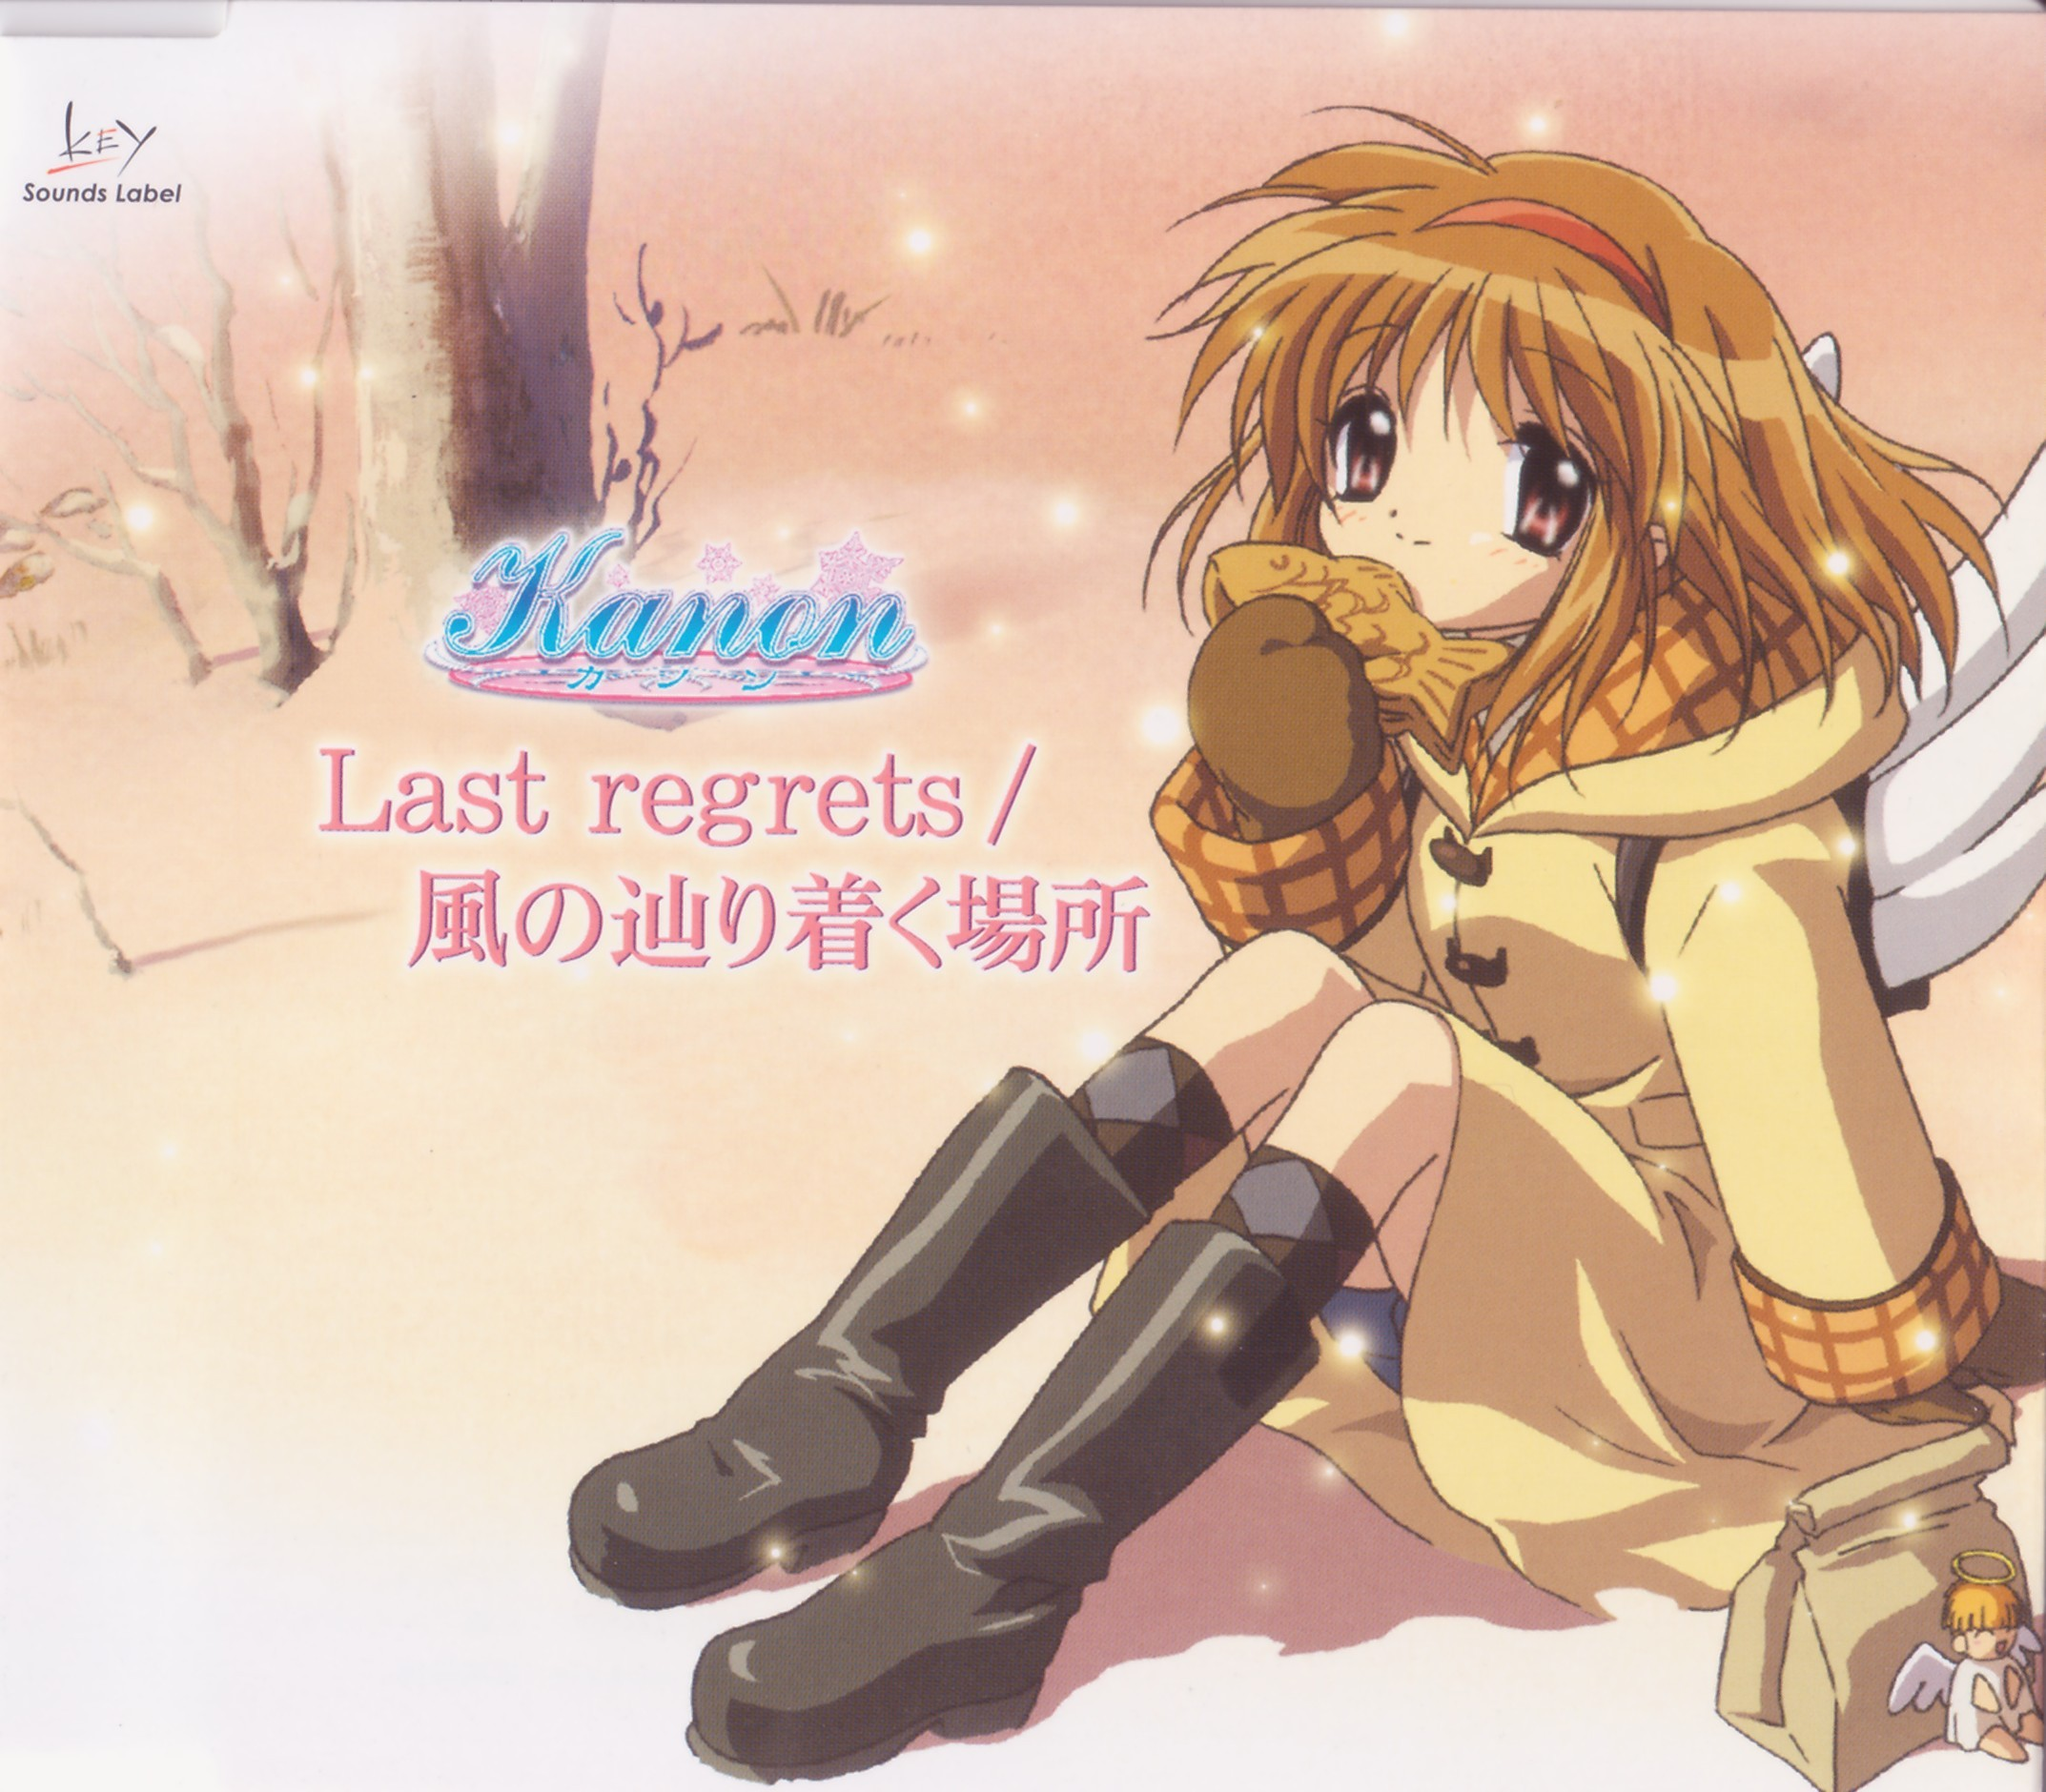 [Aporte]Kanon 2006(24/24-1280 x 720)[Mp4][Mf]